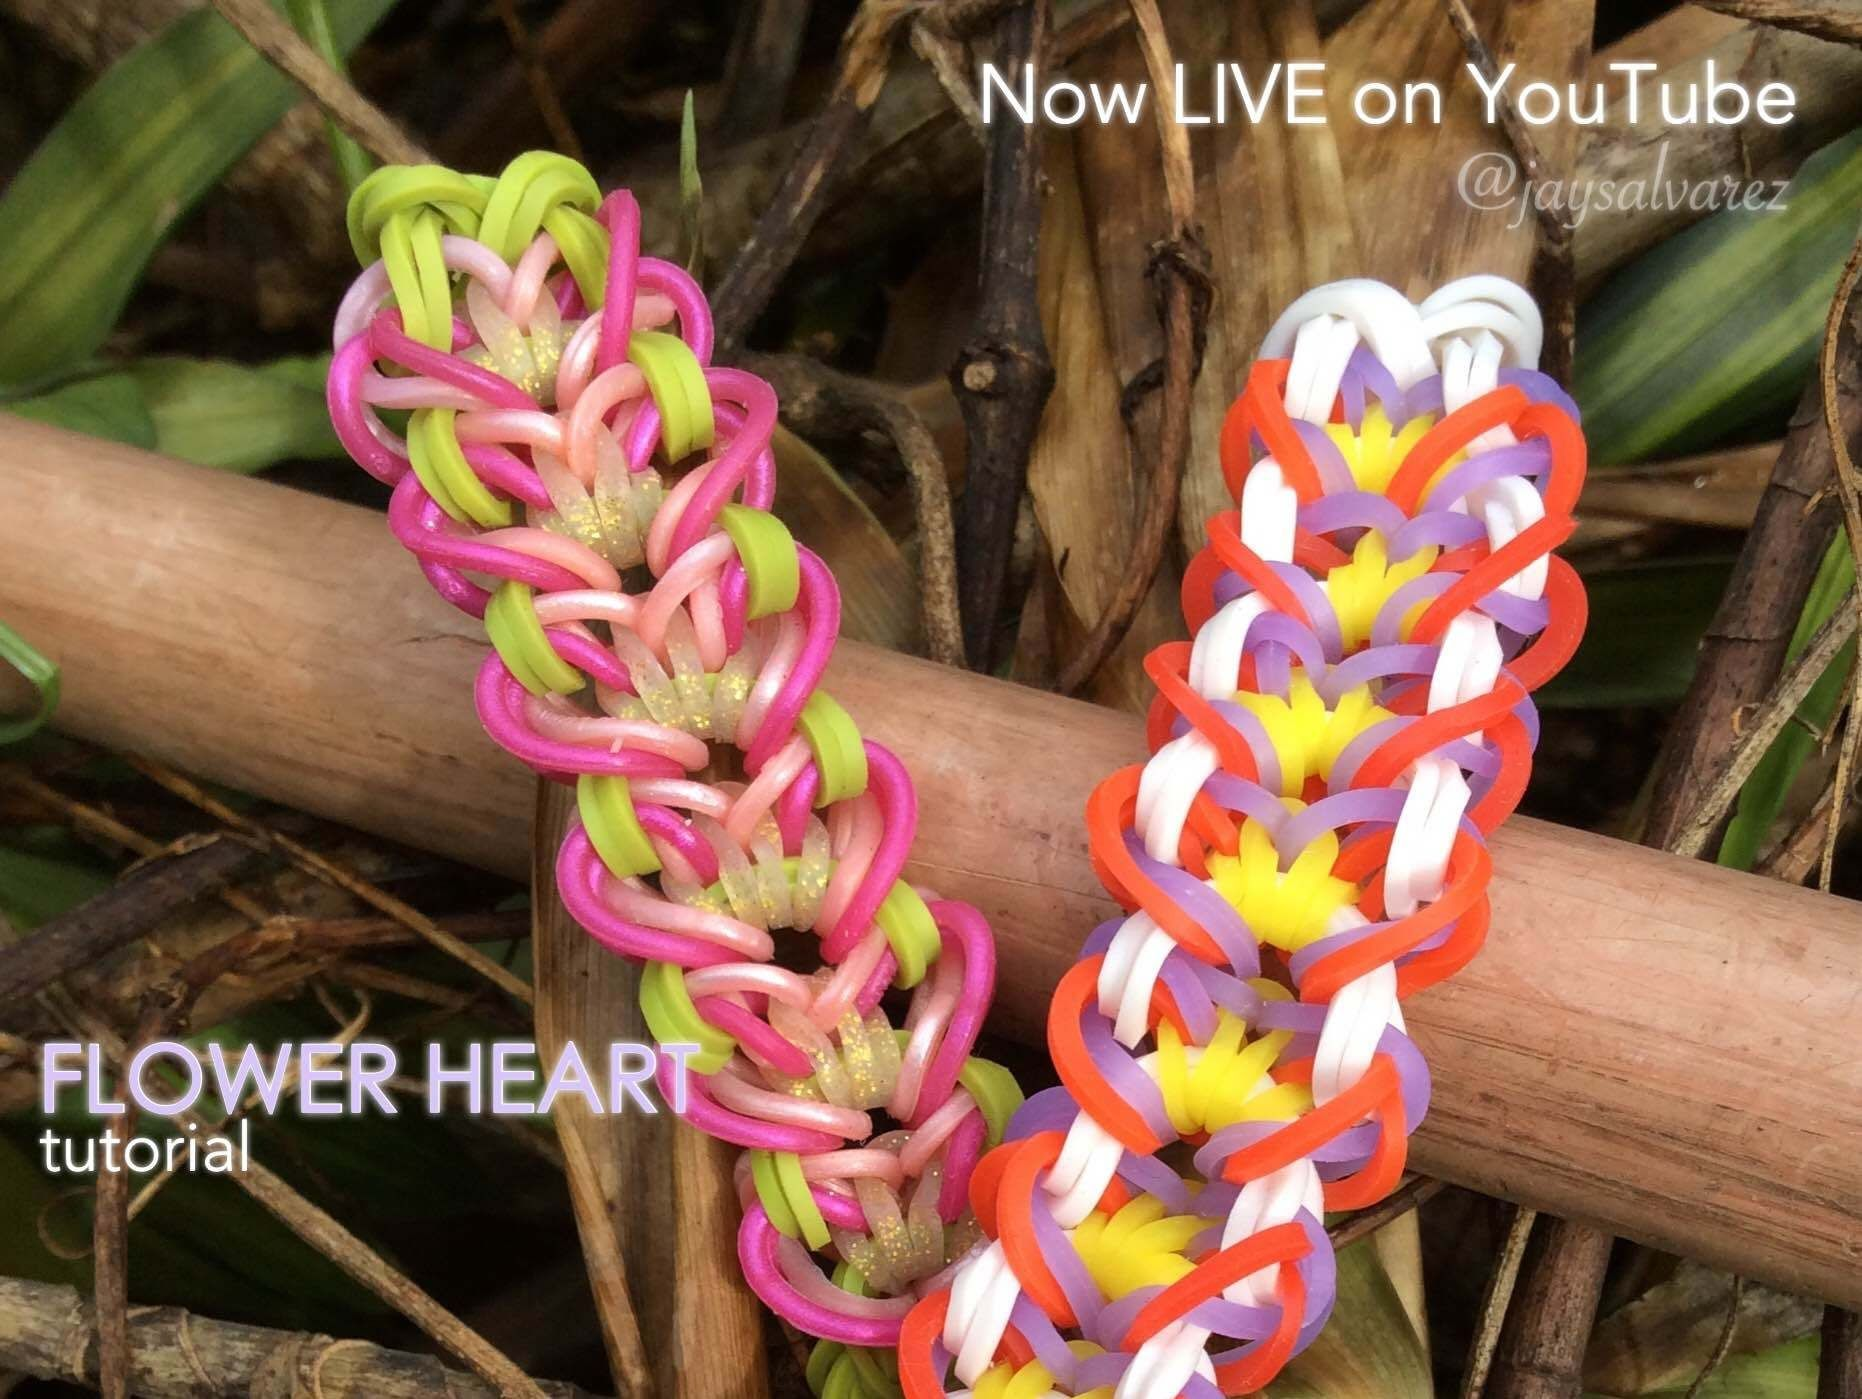 "The Rainbow Loom Star of The Week AI Enma (@ailovestoloom on Instagram) has created another beautiful bracelet. Check out the ""FLOWER HEART"" tutorial on my channel @jaysalvarez. Copyright © 2014 @jaysalvarez. Under no exceptions do we allow anyone to re-create, re-record, re-upload, or translate of my tutorials. For licensing my designs, please e-mail powercastam@gmail.com. #flowerheartbracelet #jaysalvarez #rainbowloom"